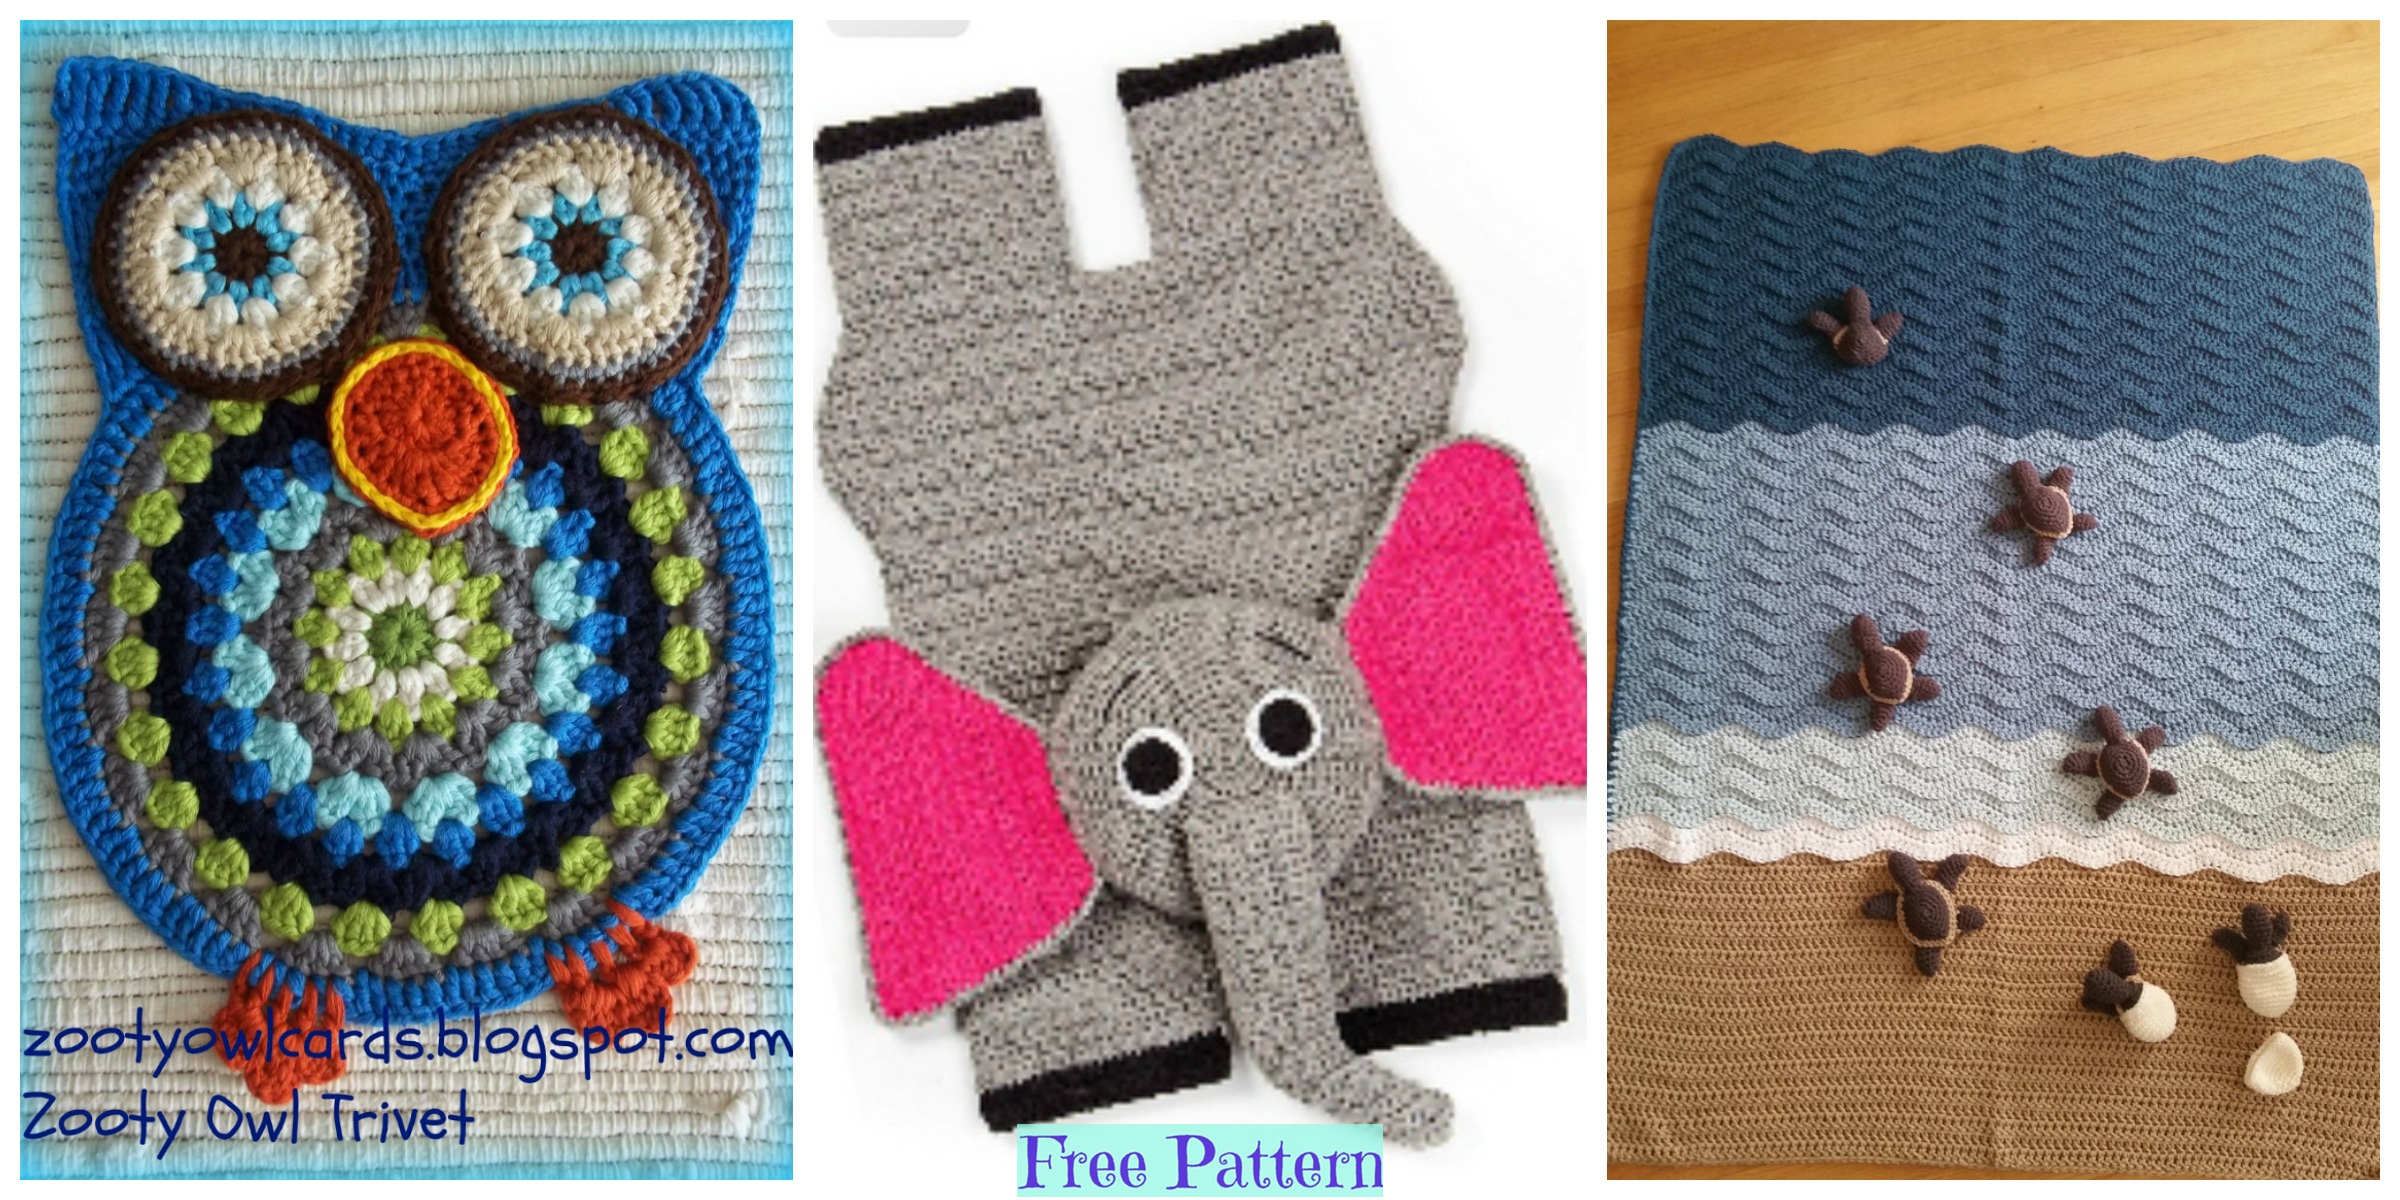 Crochet Animal Rugs Free Patterns